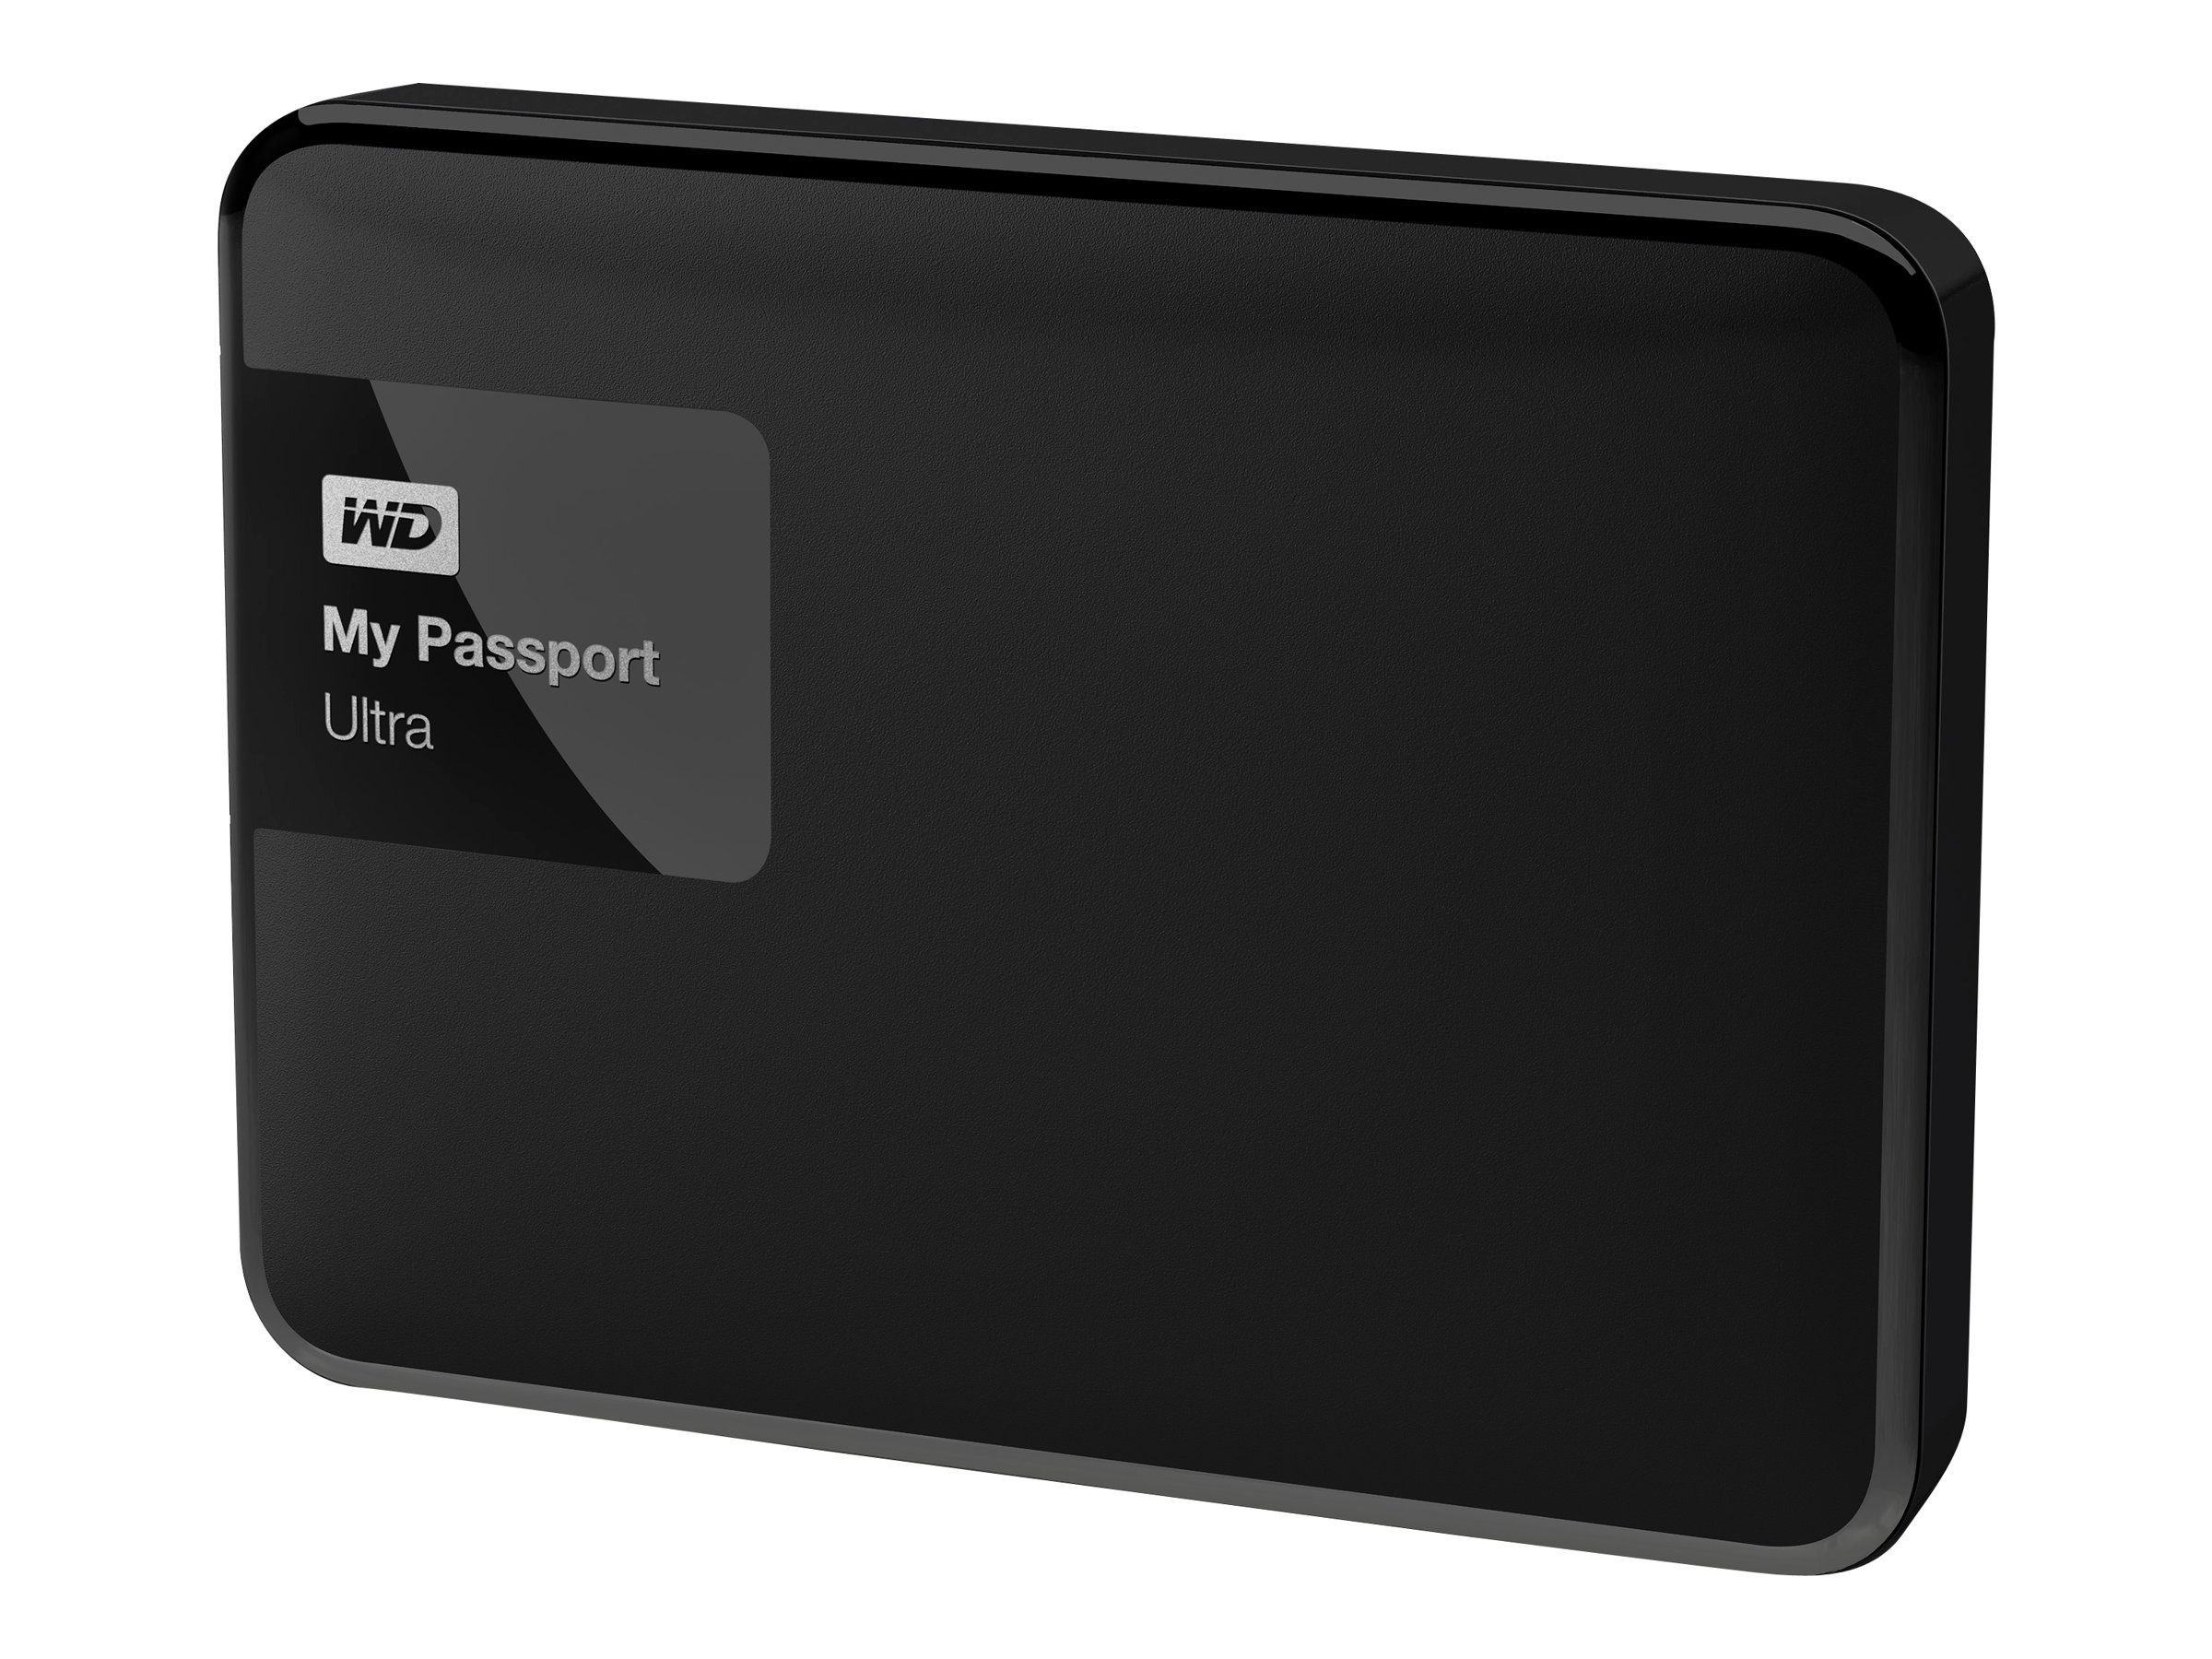 WD 1TB My Passport Ultra Portable Hard Drive - Black, WDBGPU0010BBK-NESN, 21089121, Hard Drives - External